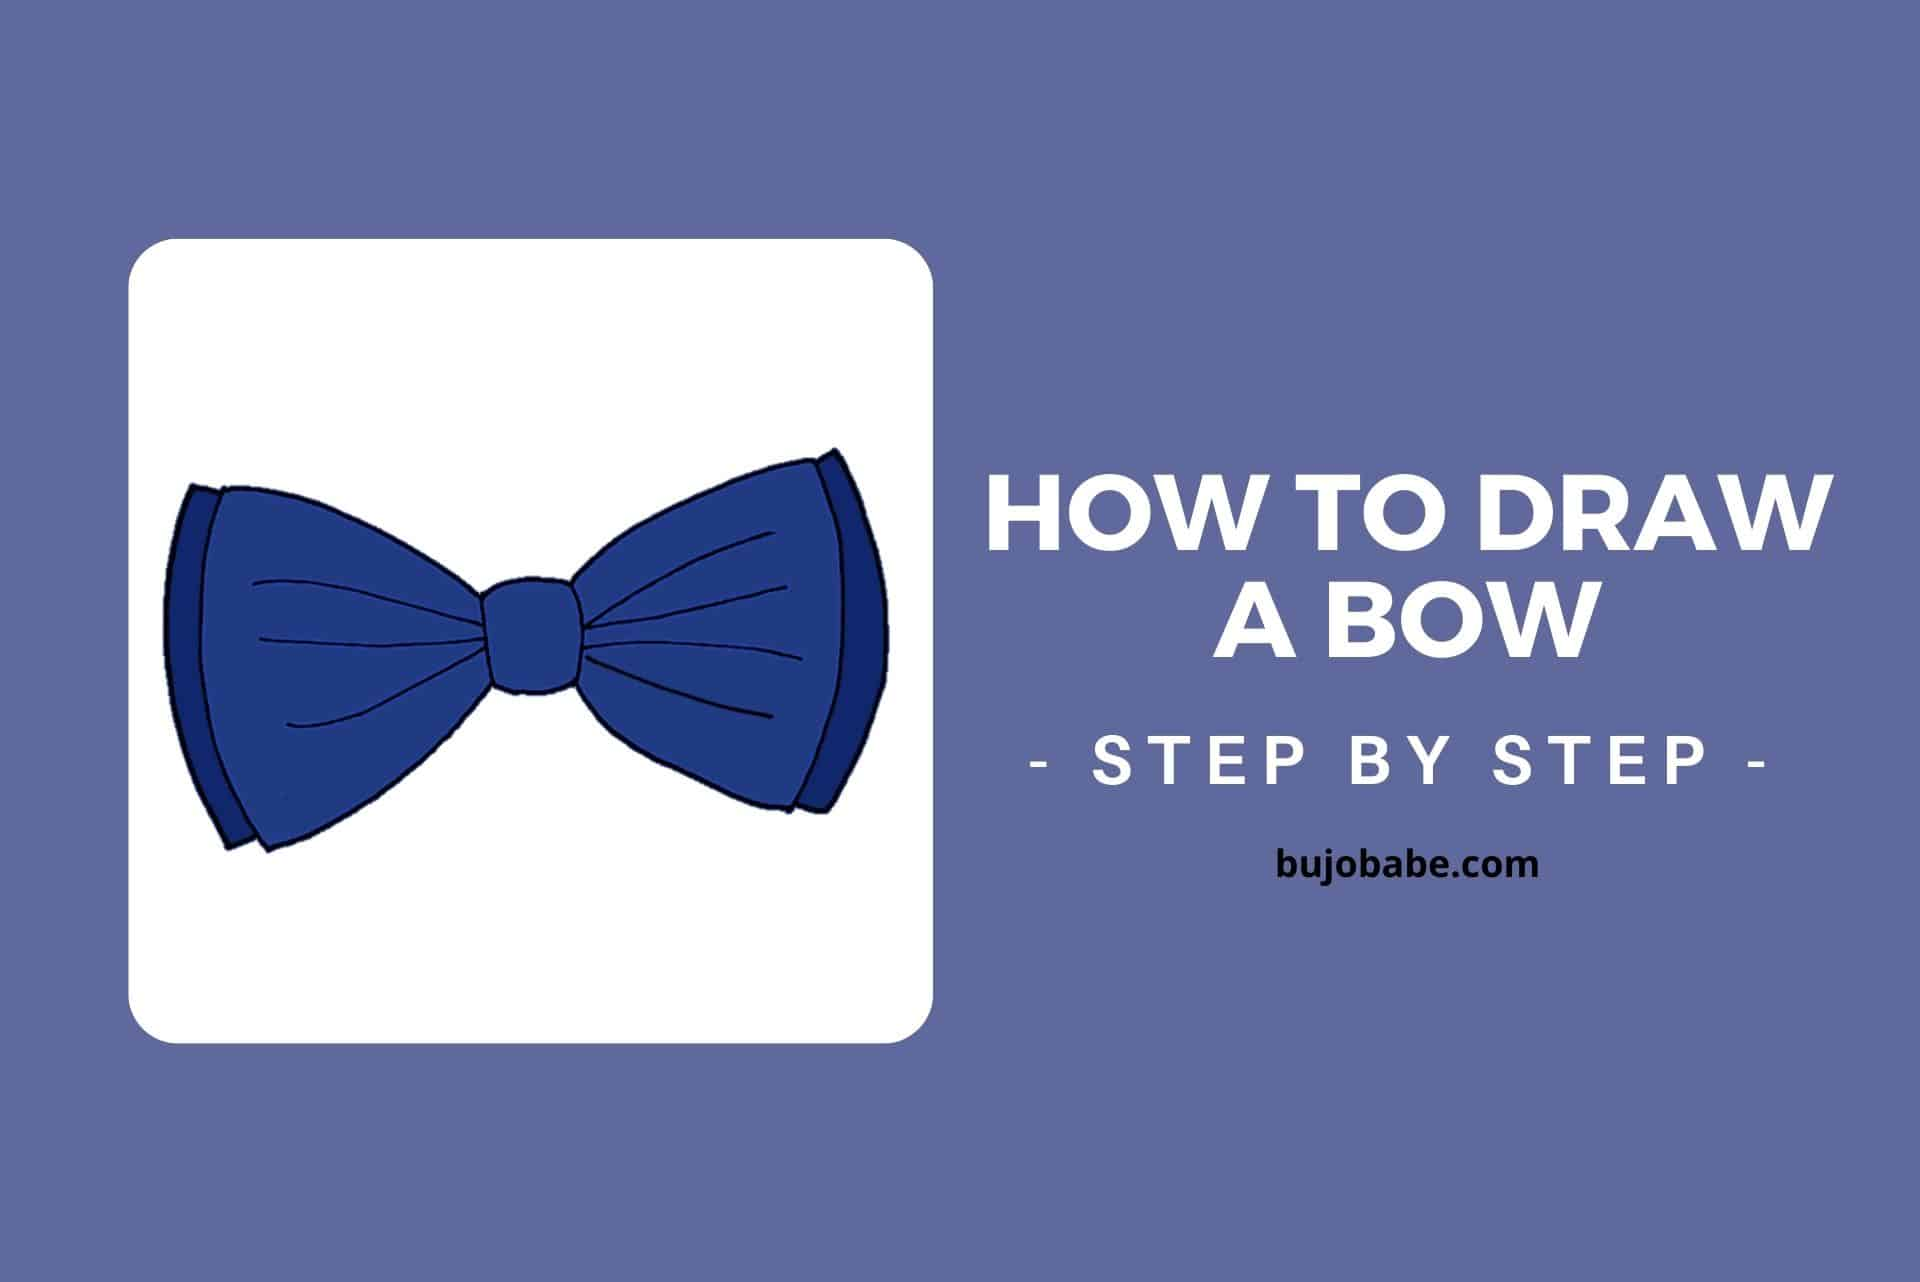 how to draw a bow step by step